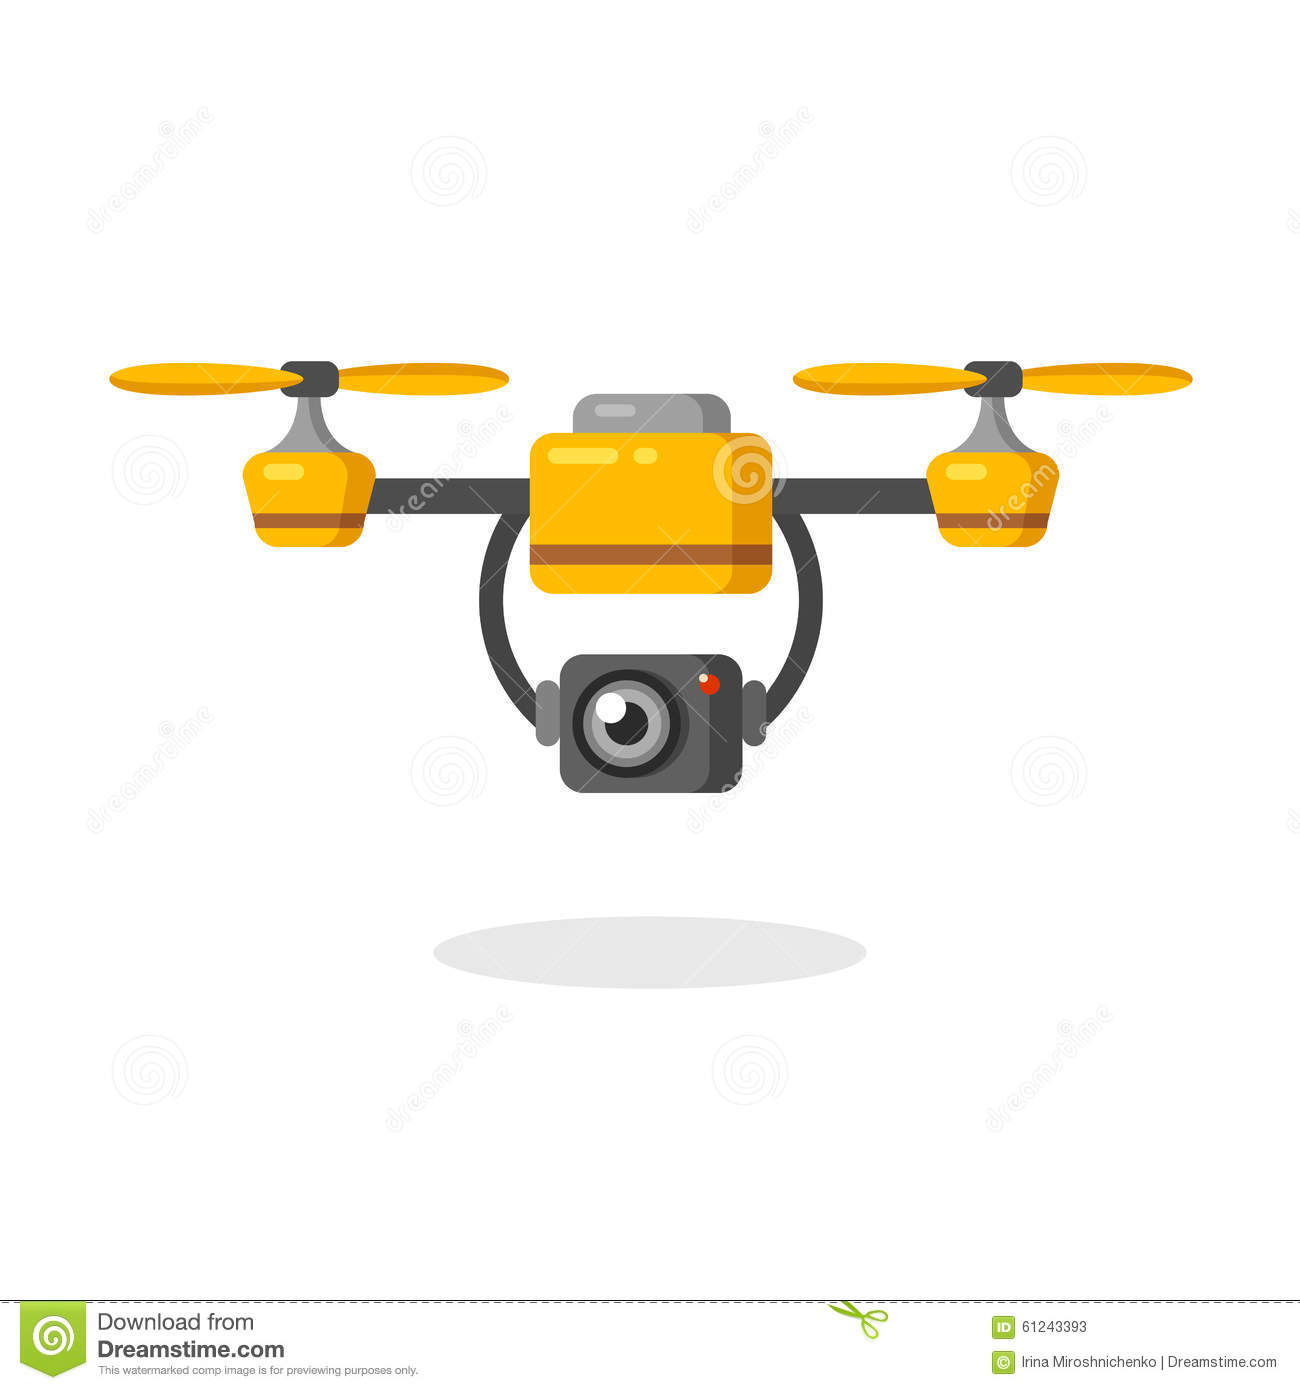 radio control drone with camera with Stock Illustration Aerial Photography Drone Quadcopter Camera Video Surveillance Flat Cartoon Vector Illustration Image61243393 on 381983268506 together with Anki Overdrive Race Track additionally X6sw Wifi Fpv Toys Camera Rc Helicopter Drone Quadcopter Gopro Professional Drones With Camera Hd Vs Drone in addition Stock Illustration Funny Drone Pizza Video Camera Series Cartoon Drones Image74879064 further Rover Revolution App Controlled Off Road Spy Vehicle.